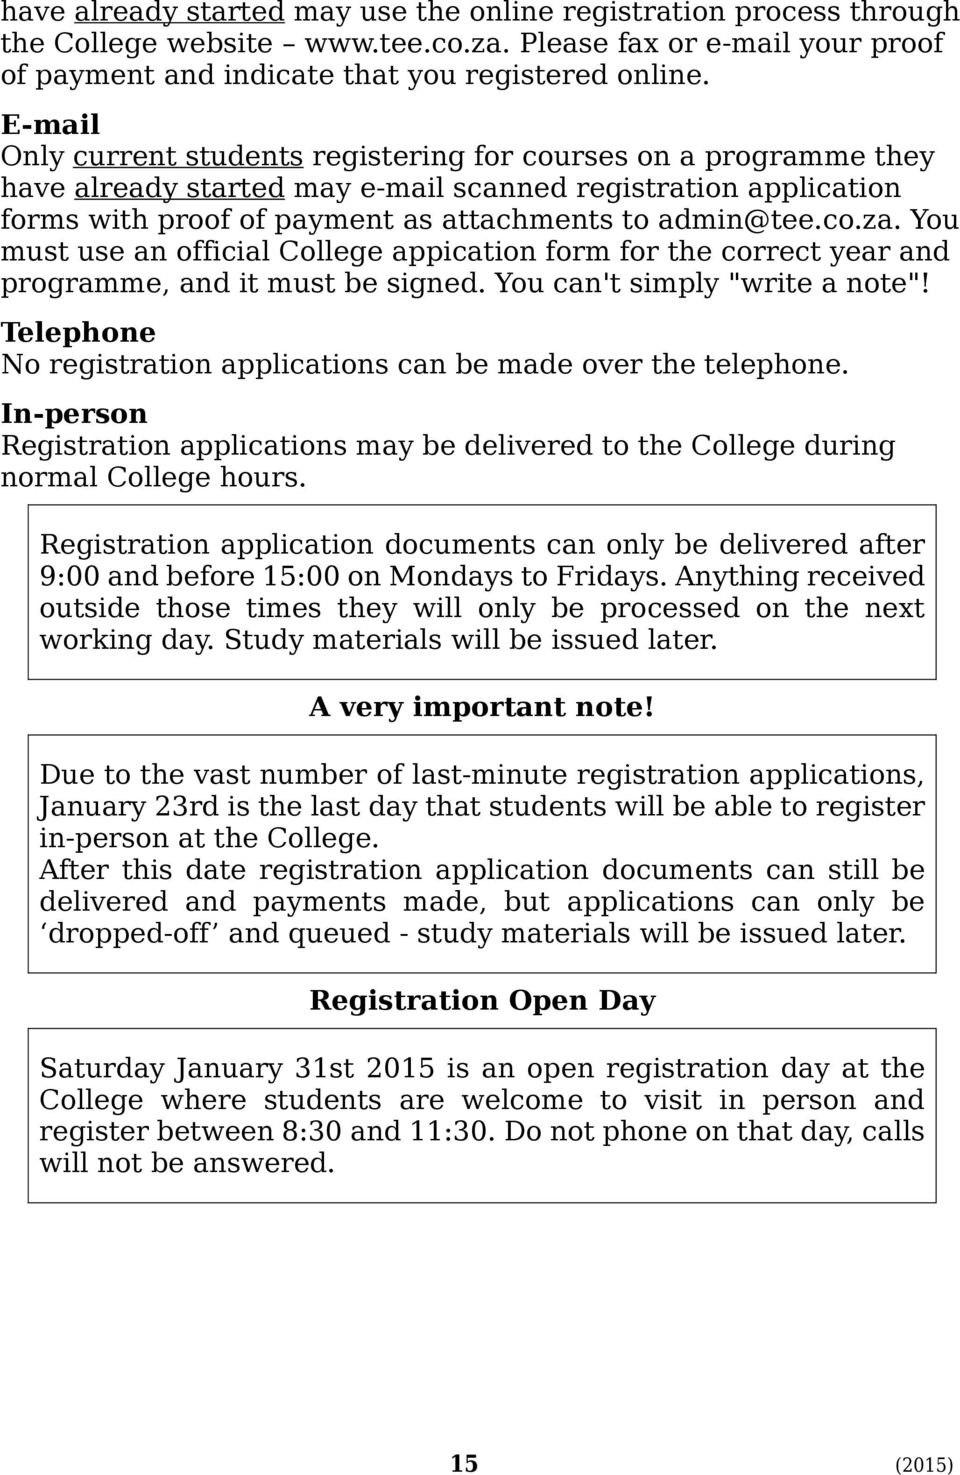 "You must use an official College appication form for the correct year and programme, and it must be signed. You can't simply ""write a note""!"